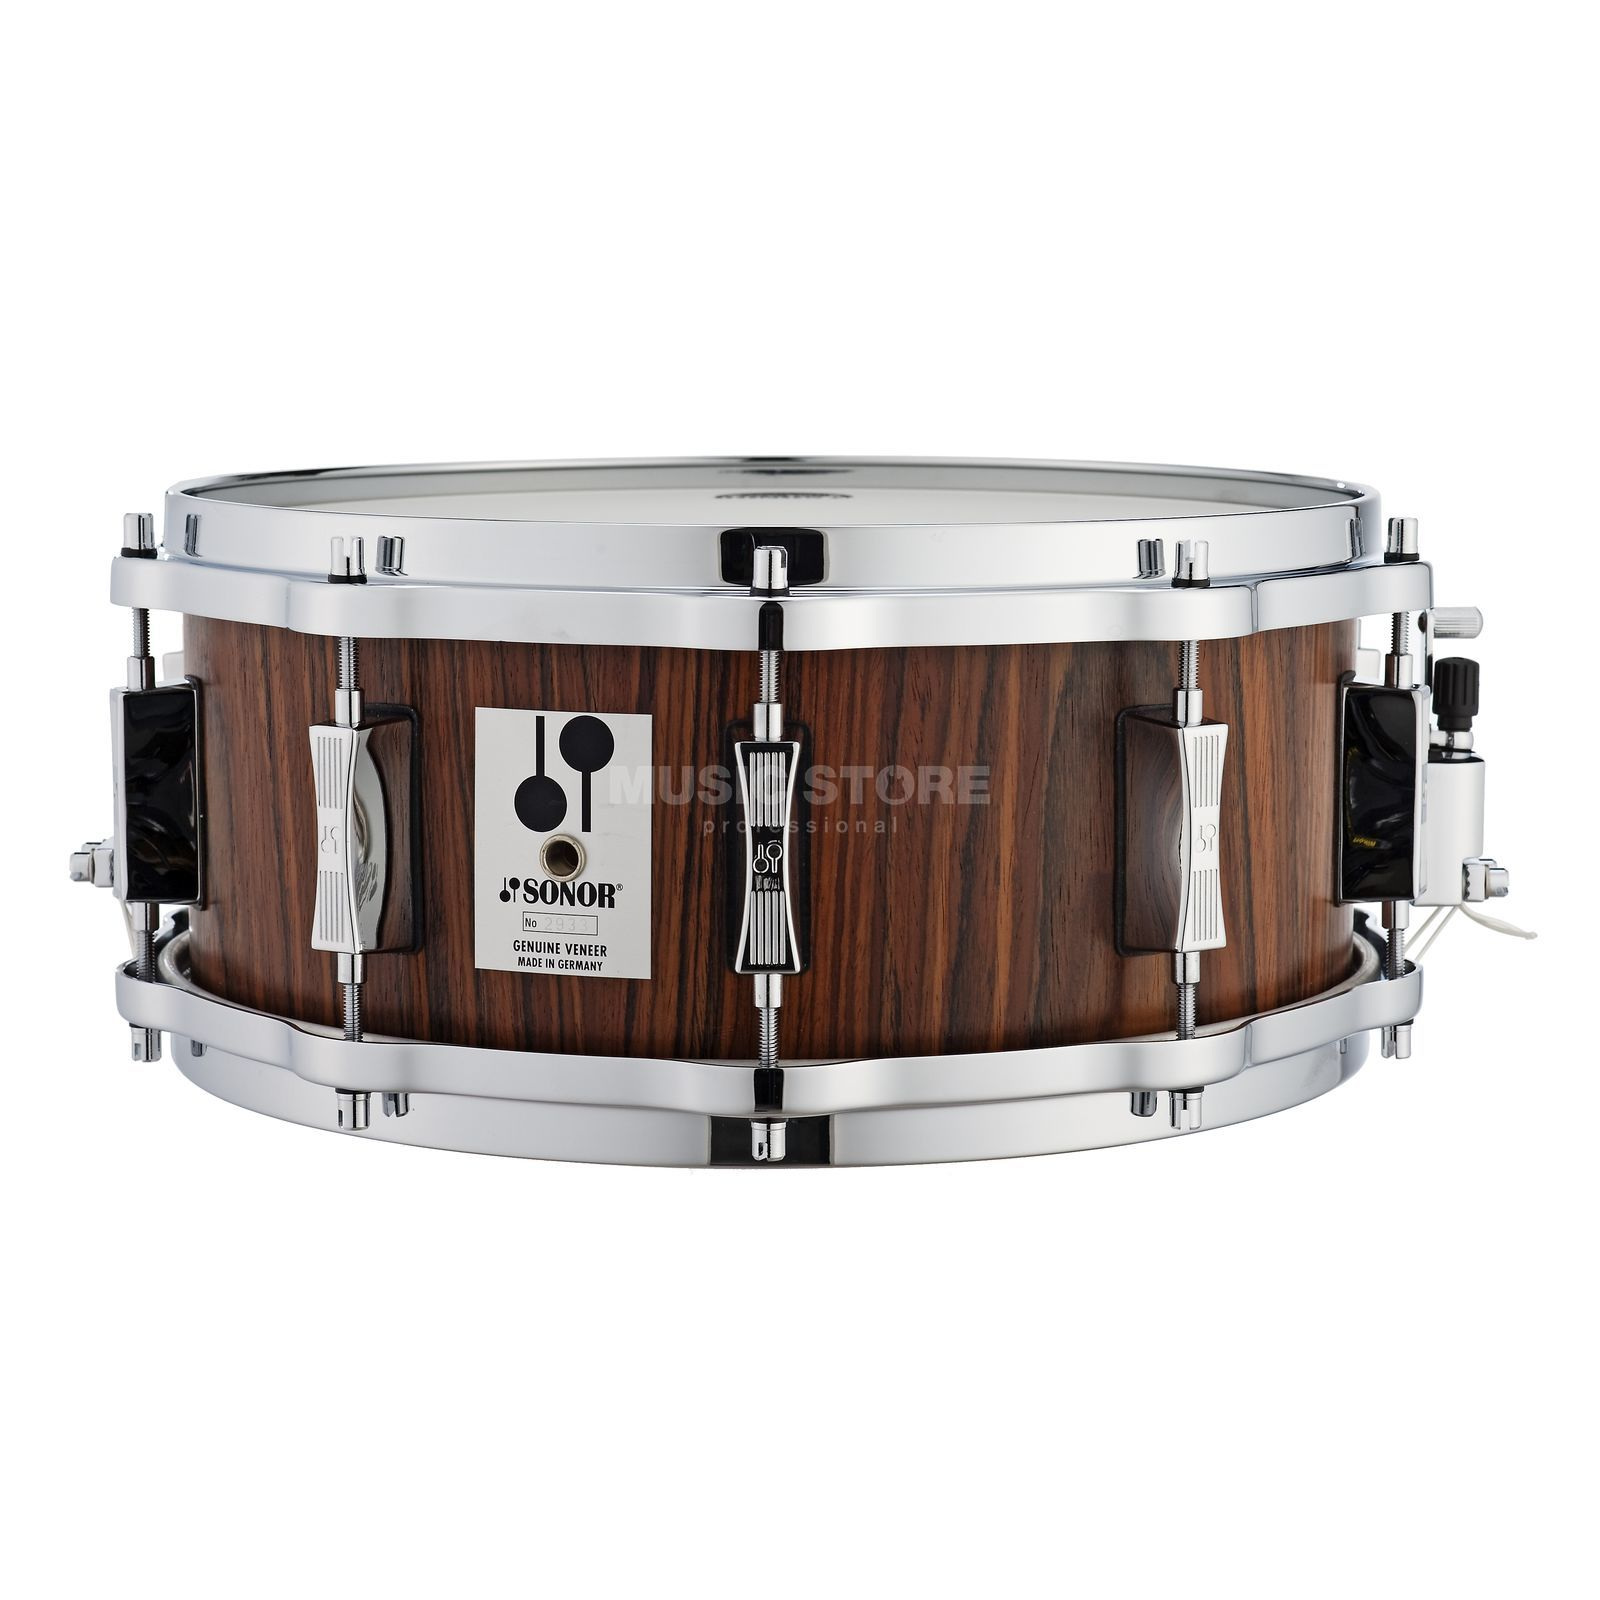 "Sonor Phonic Re-Issue Snare D 515 PA 14""x5 3/4"", palo santo #PA Imagen del producto"